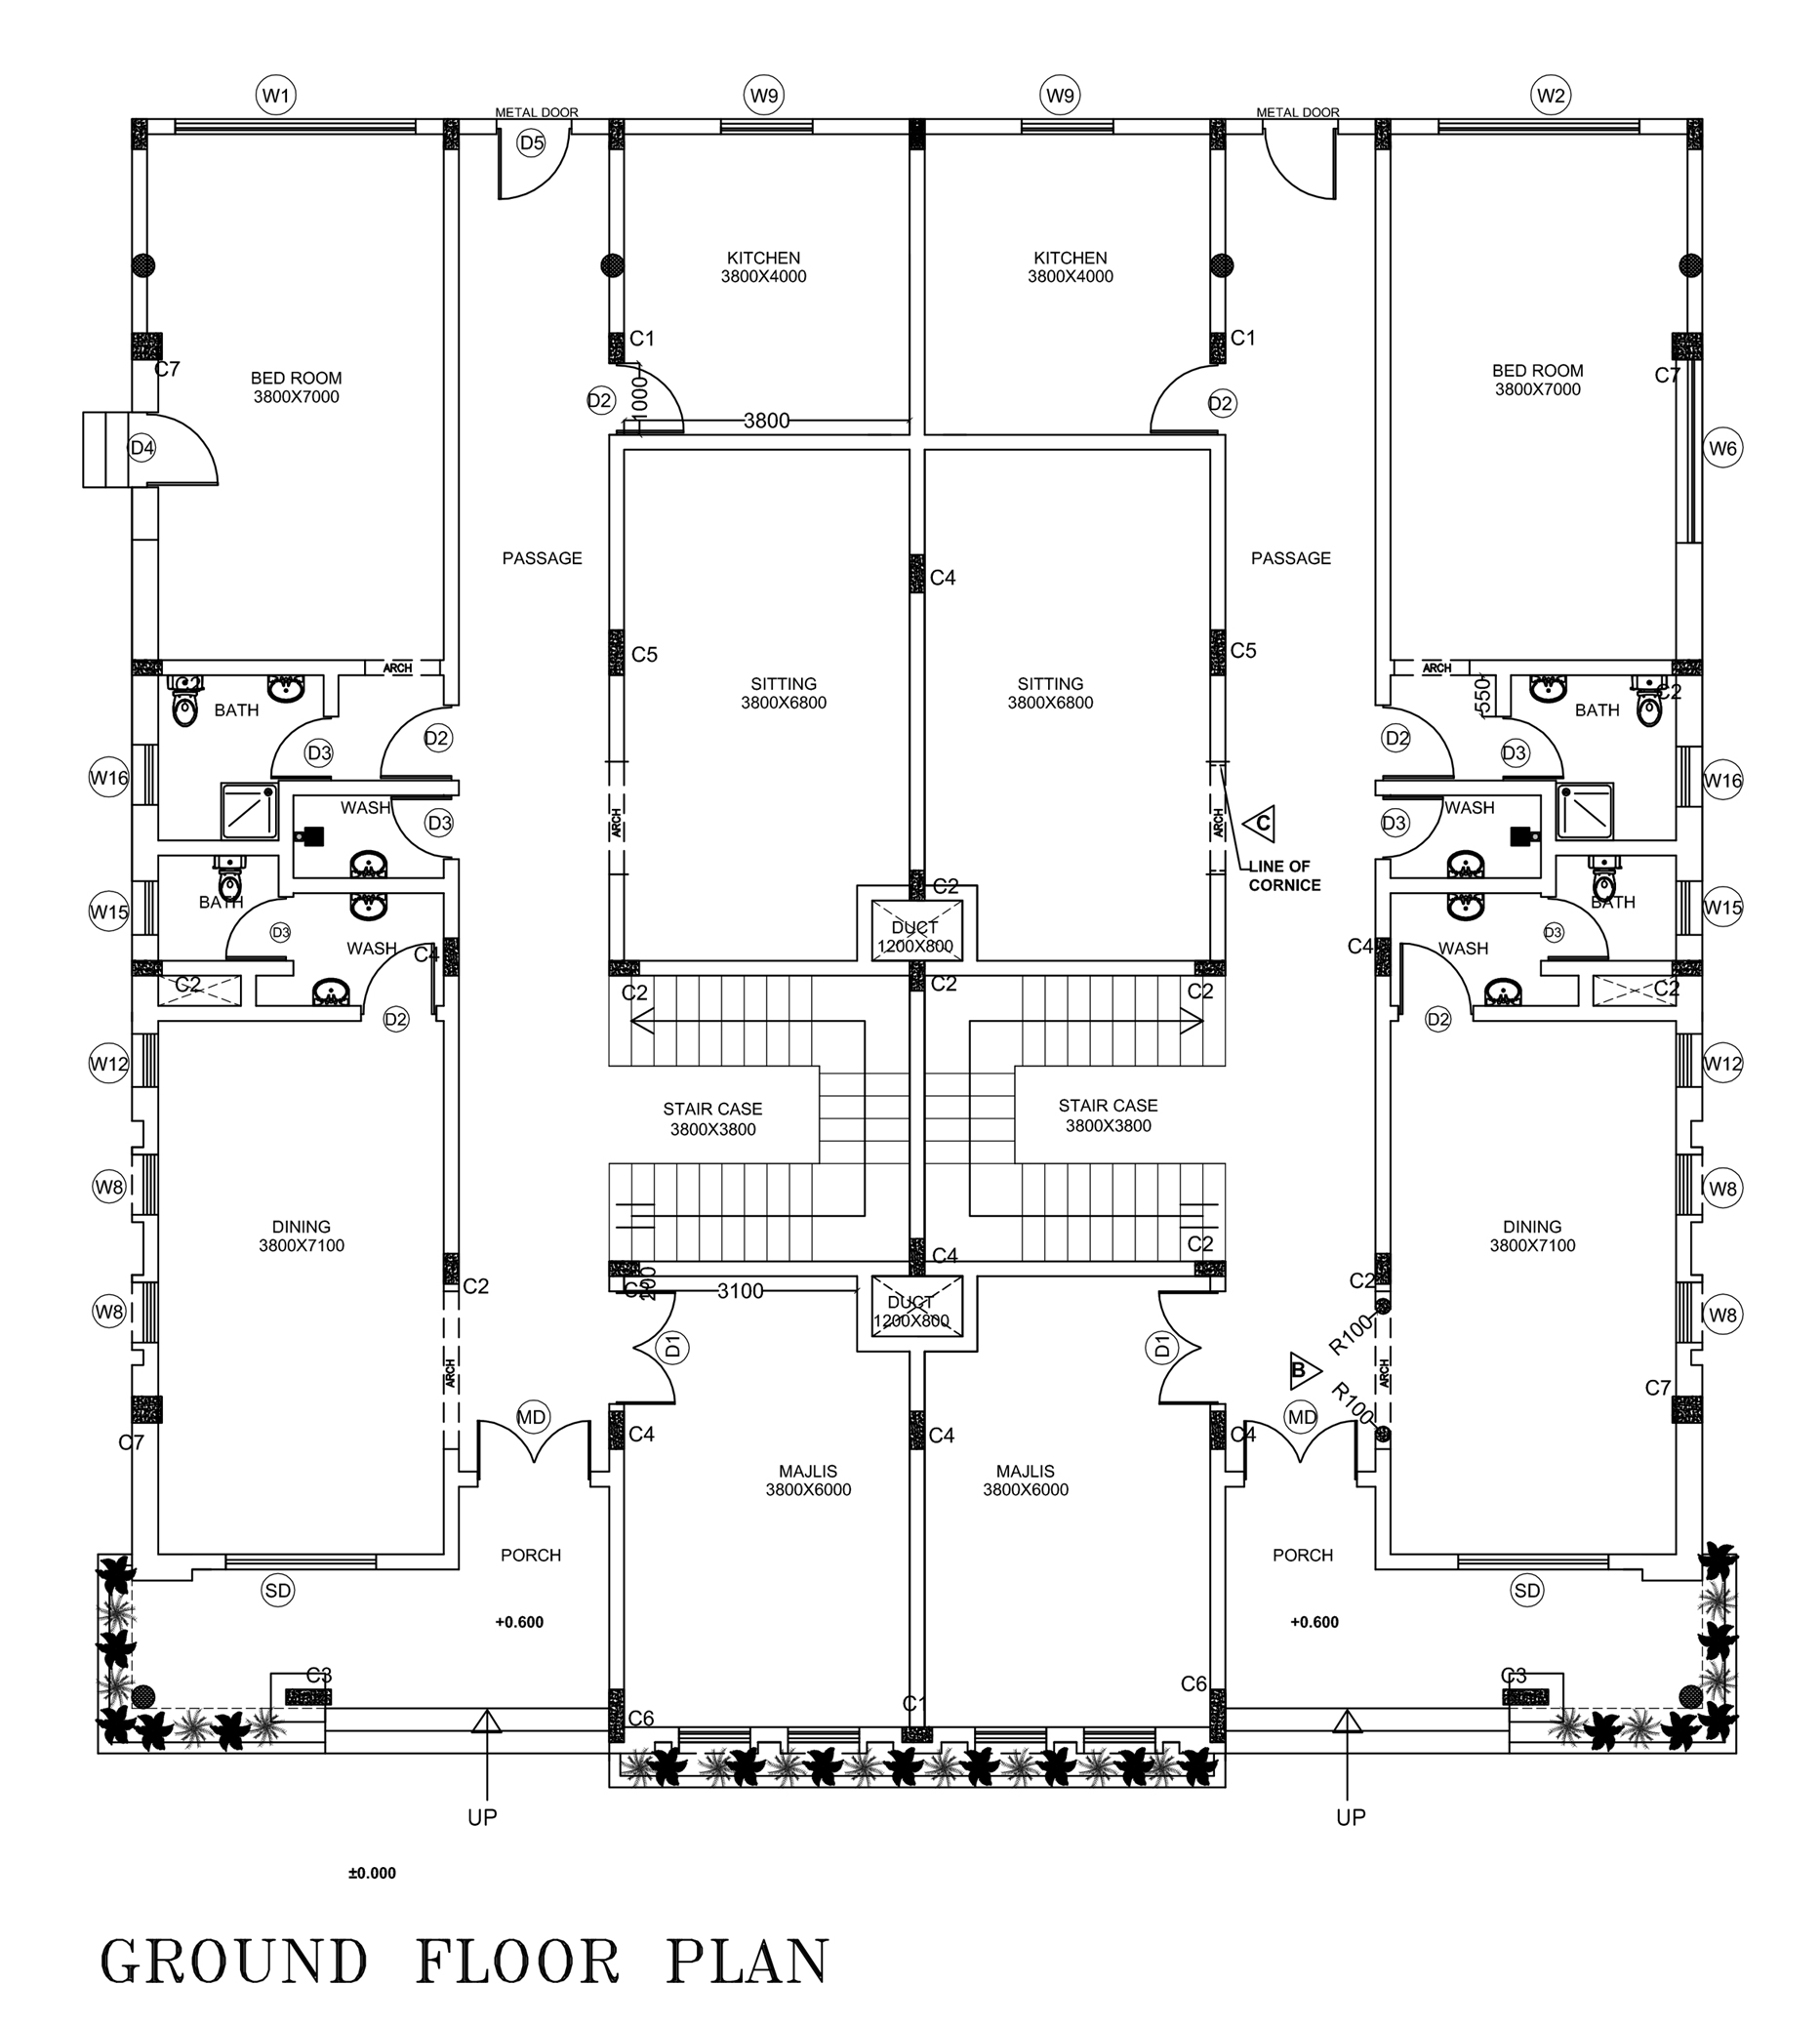 Front Elevation Of Floor Plan : Twin villa floor plan with side elevation free download